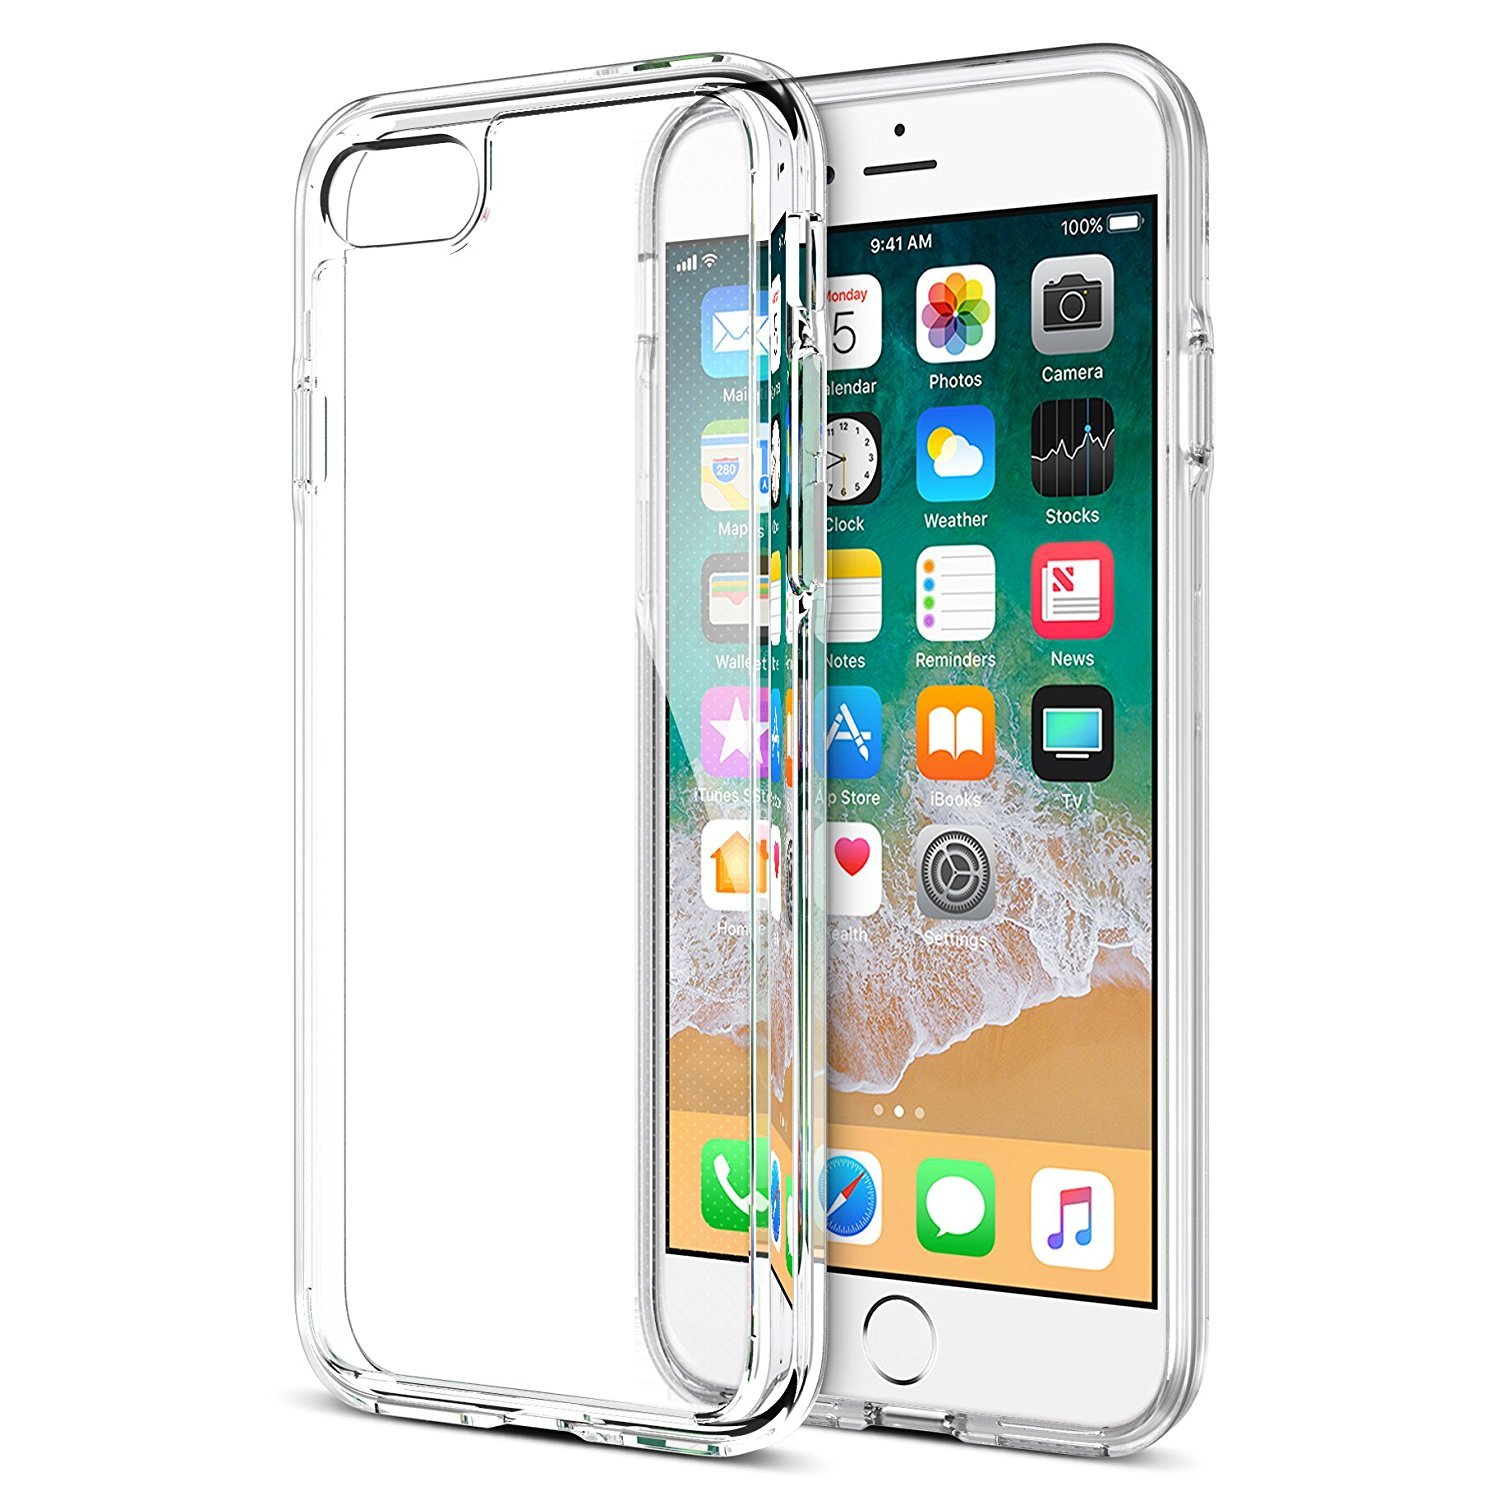 CLEAR Cover for iPhone 7 Plus